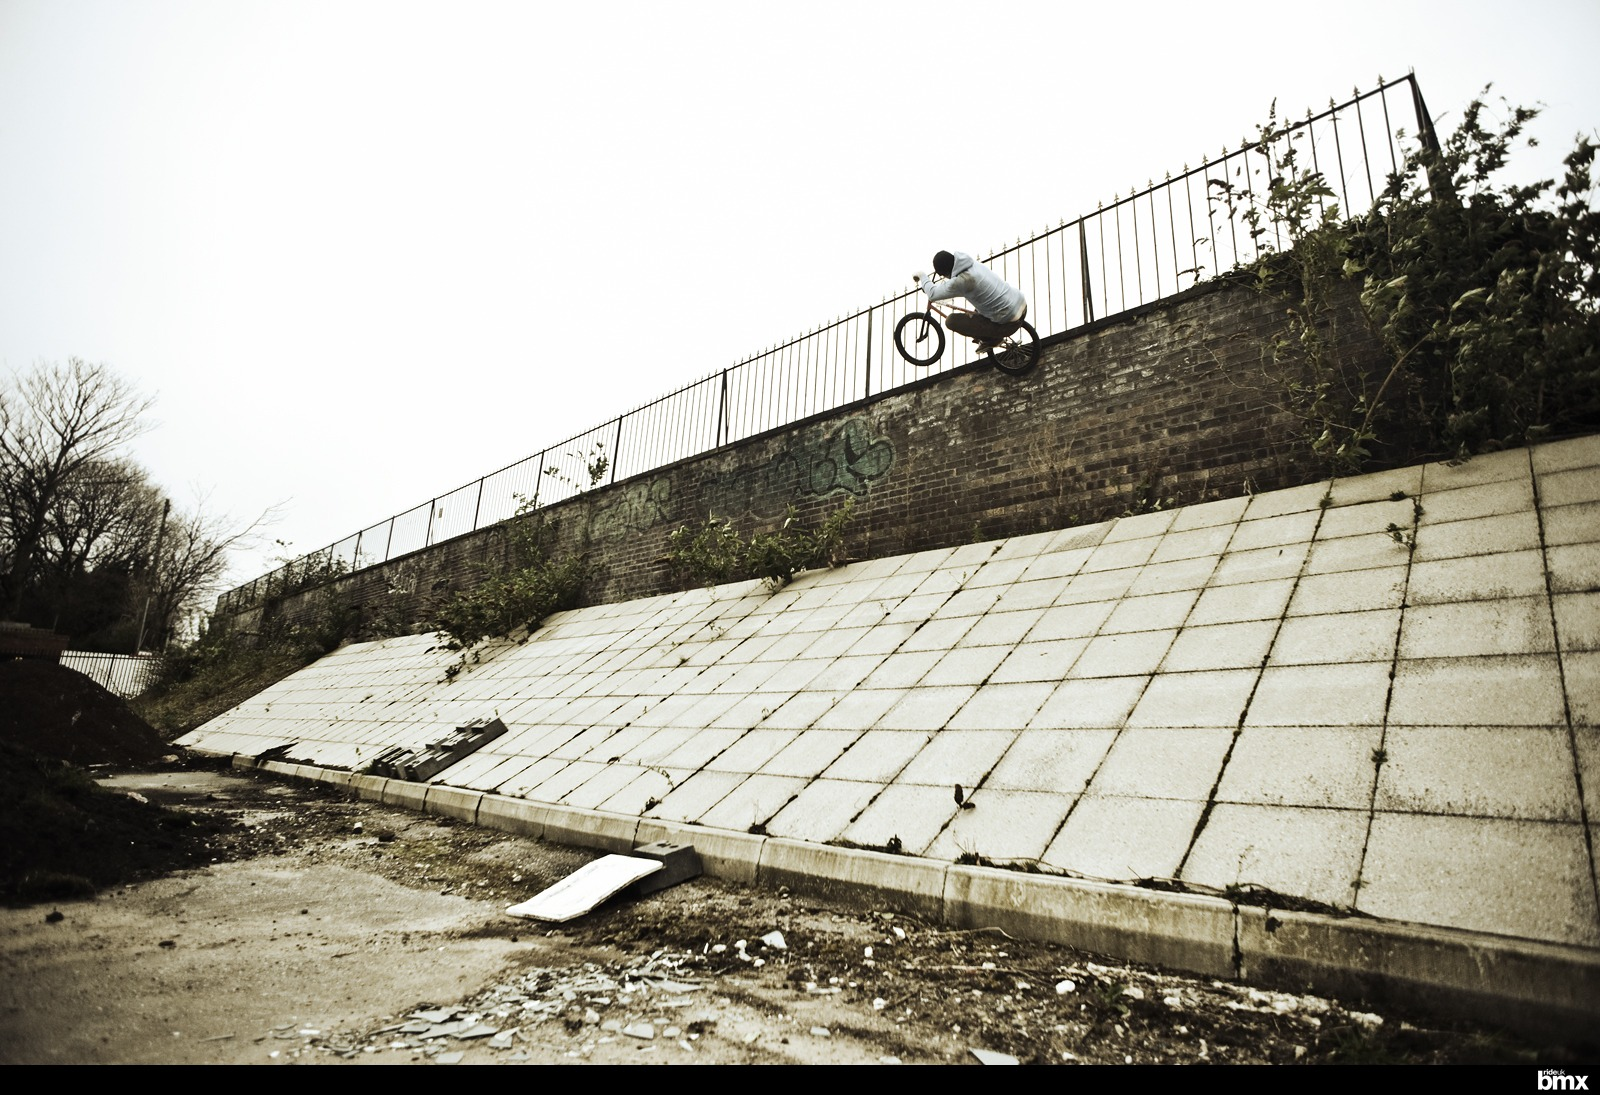 Way-up there icepick on the backstreets of Liverpool.